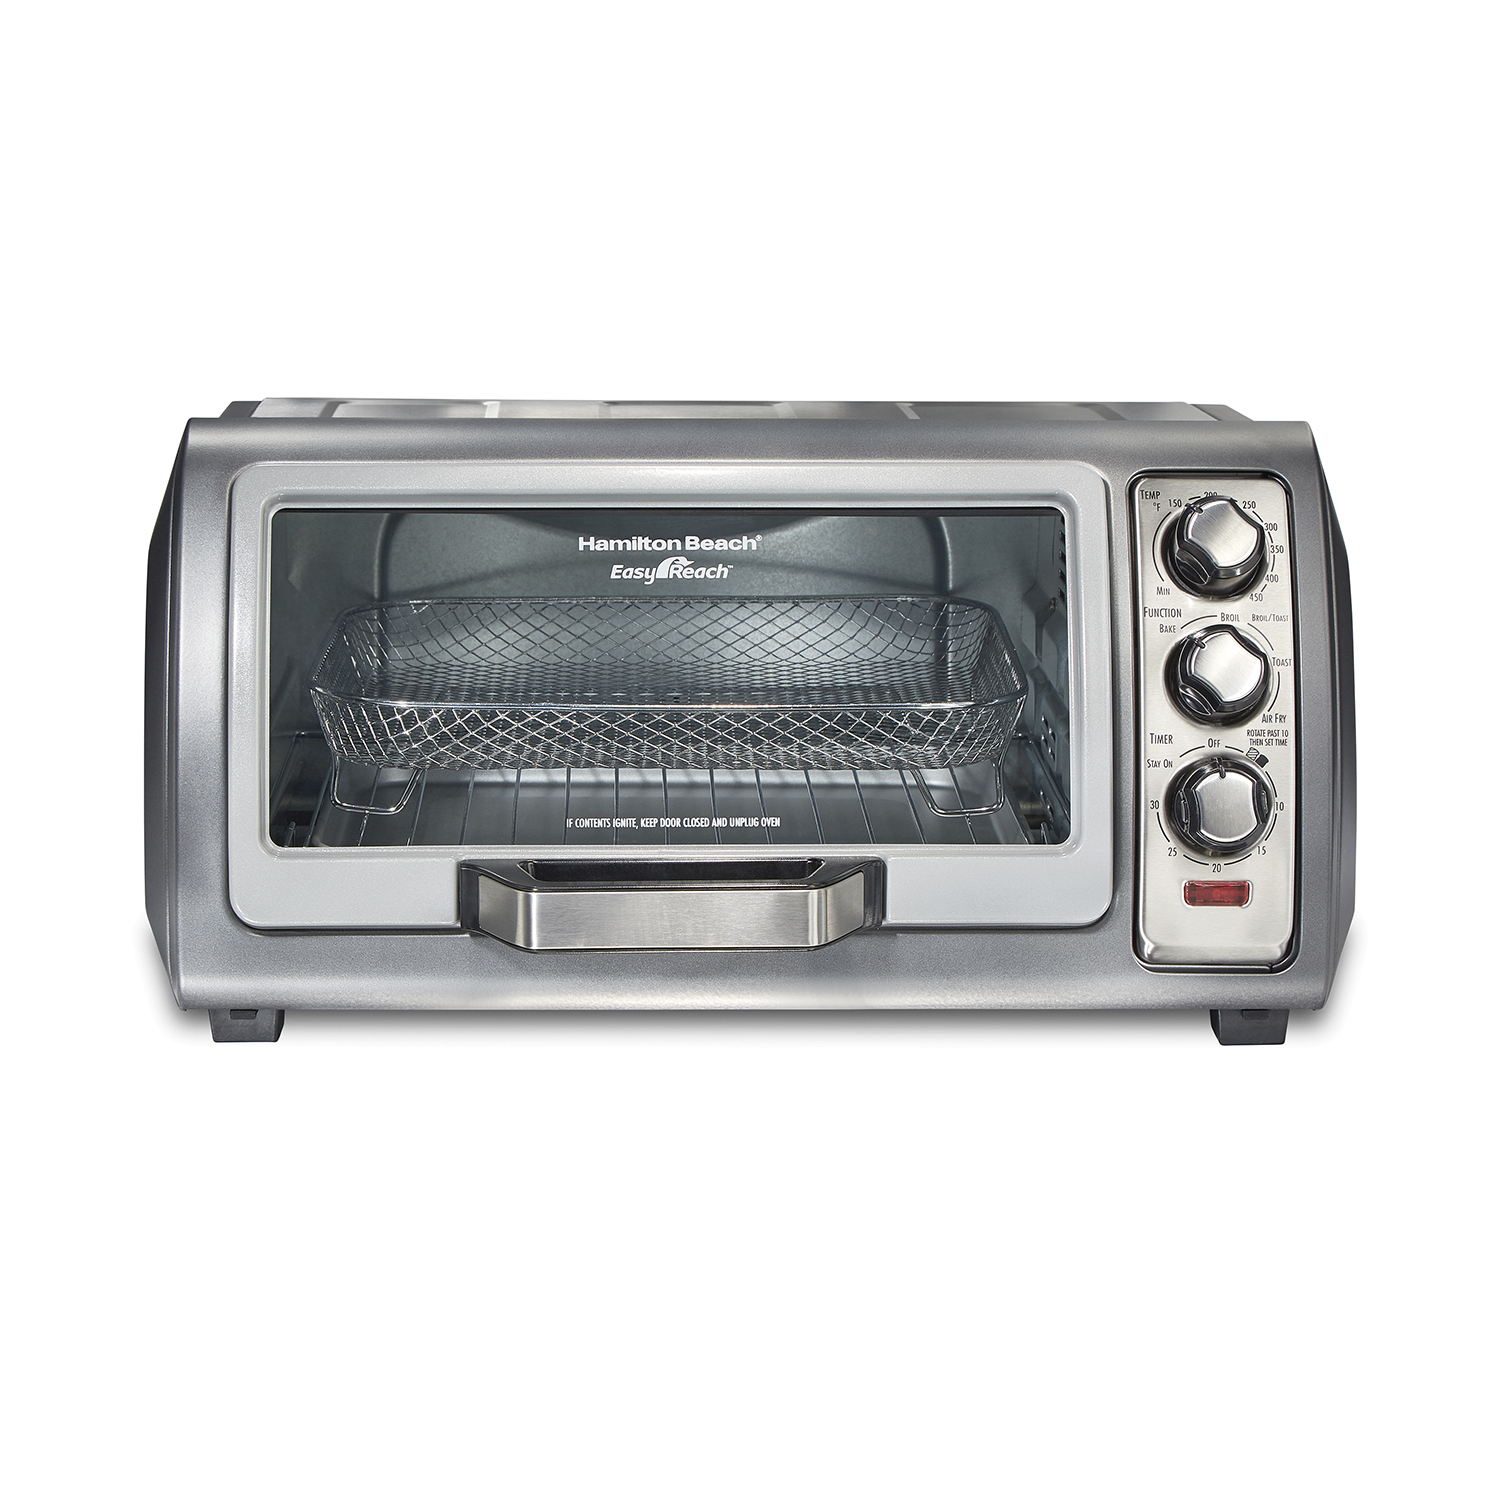 Sure-Crisp® Air Fryer Toaster Oven with Easy Reach® Door (31523)